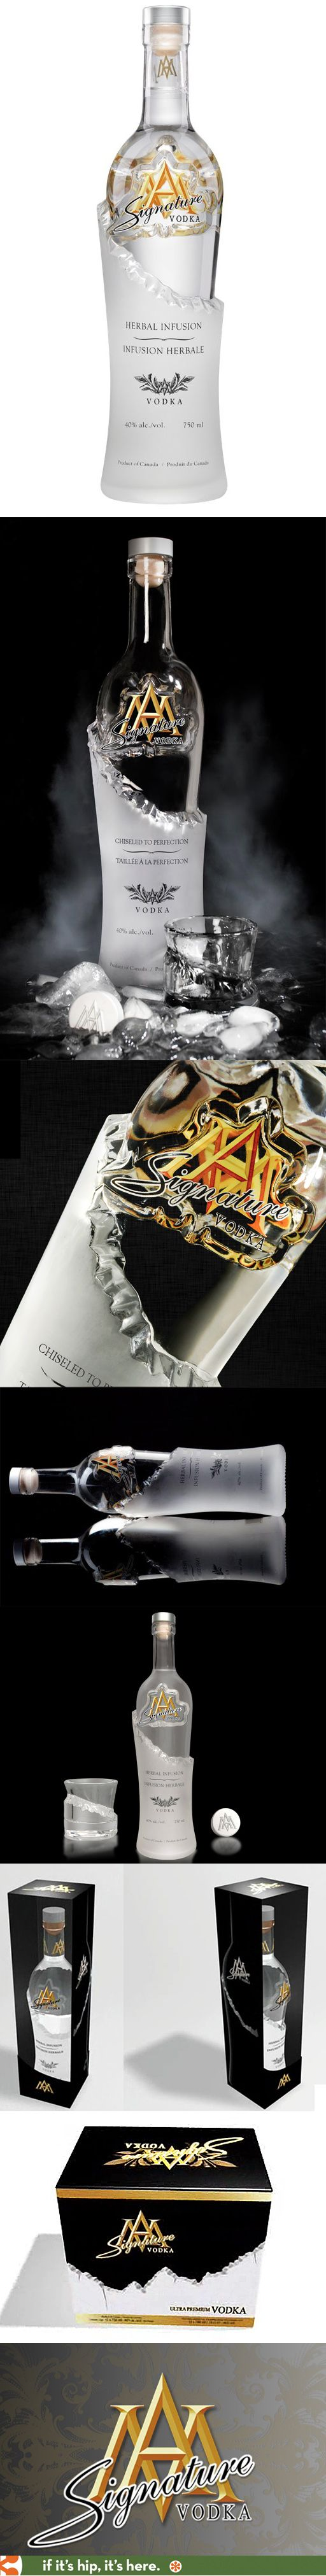 Signature Vodka (herbal-infused) in an unusual chiseled bottle design #packaging #design: